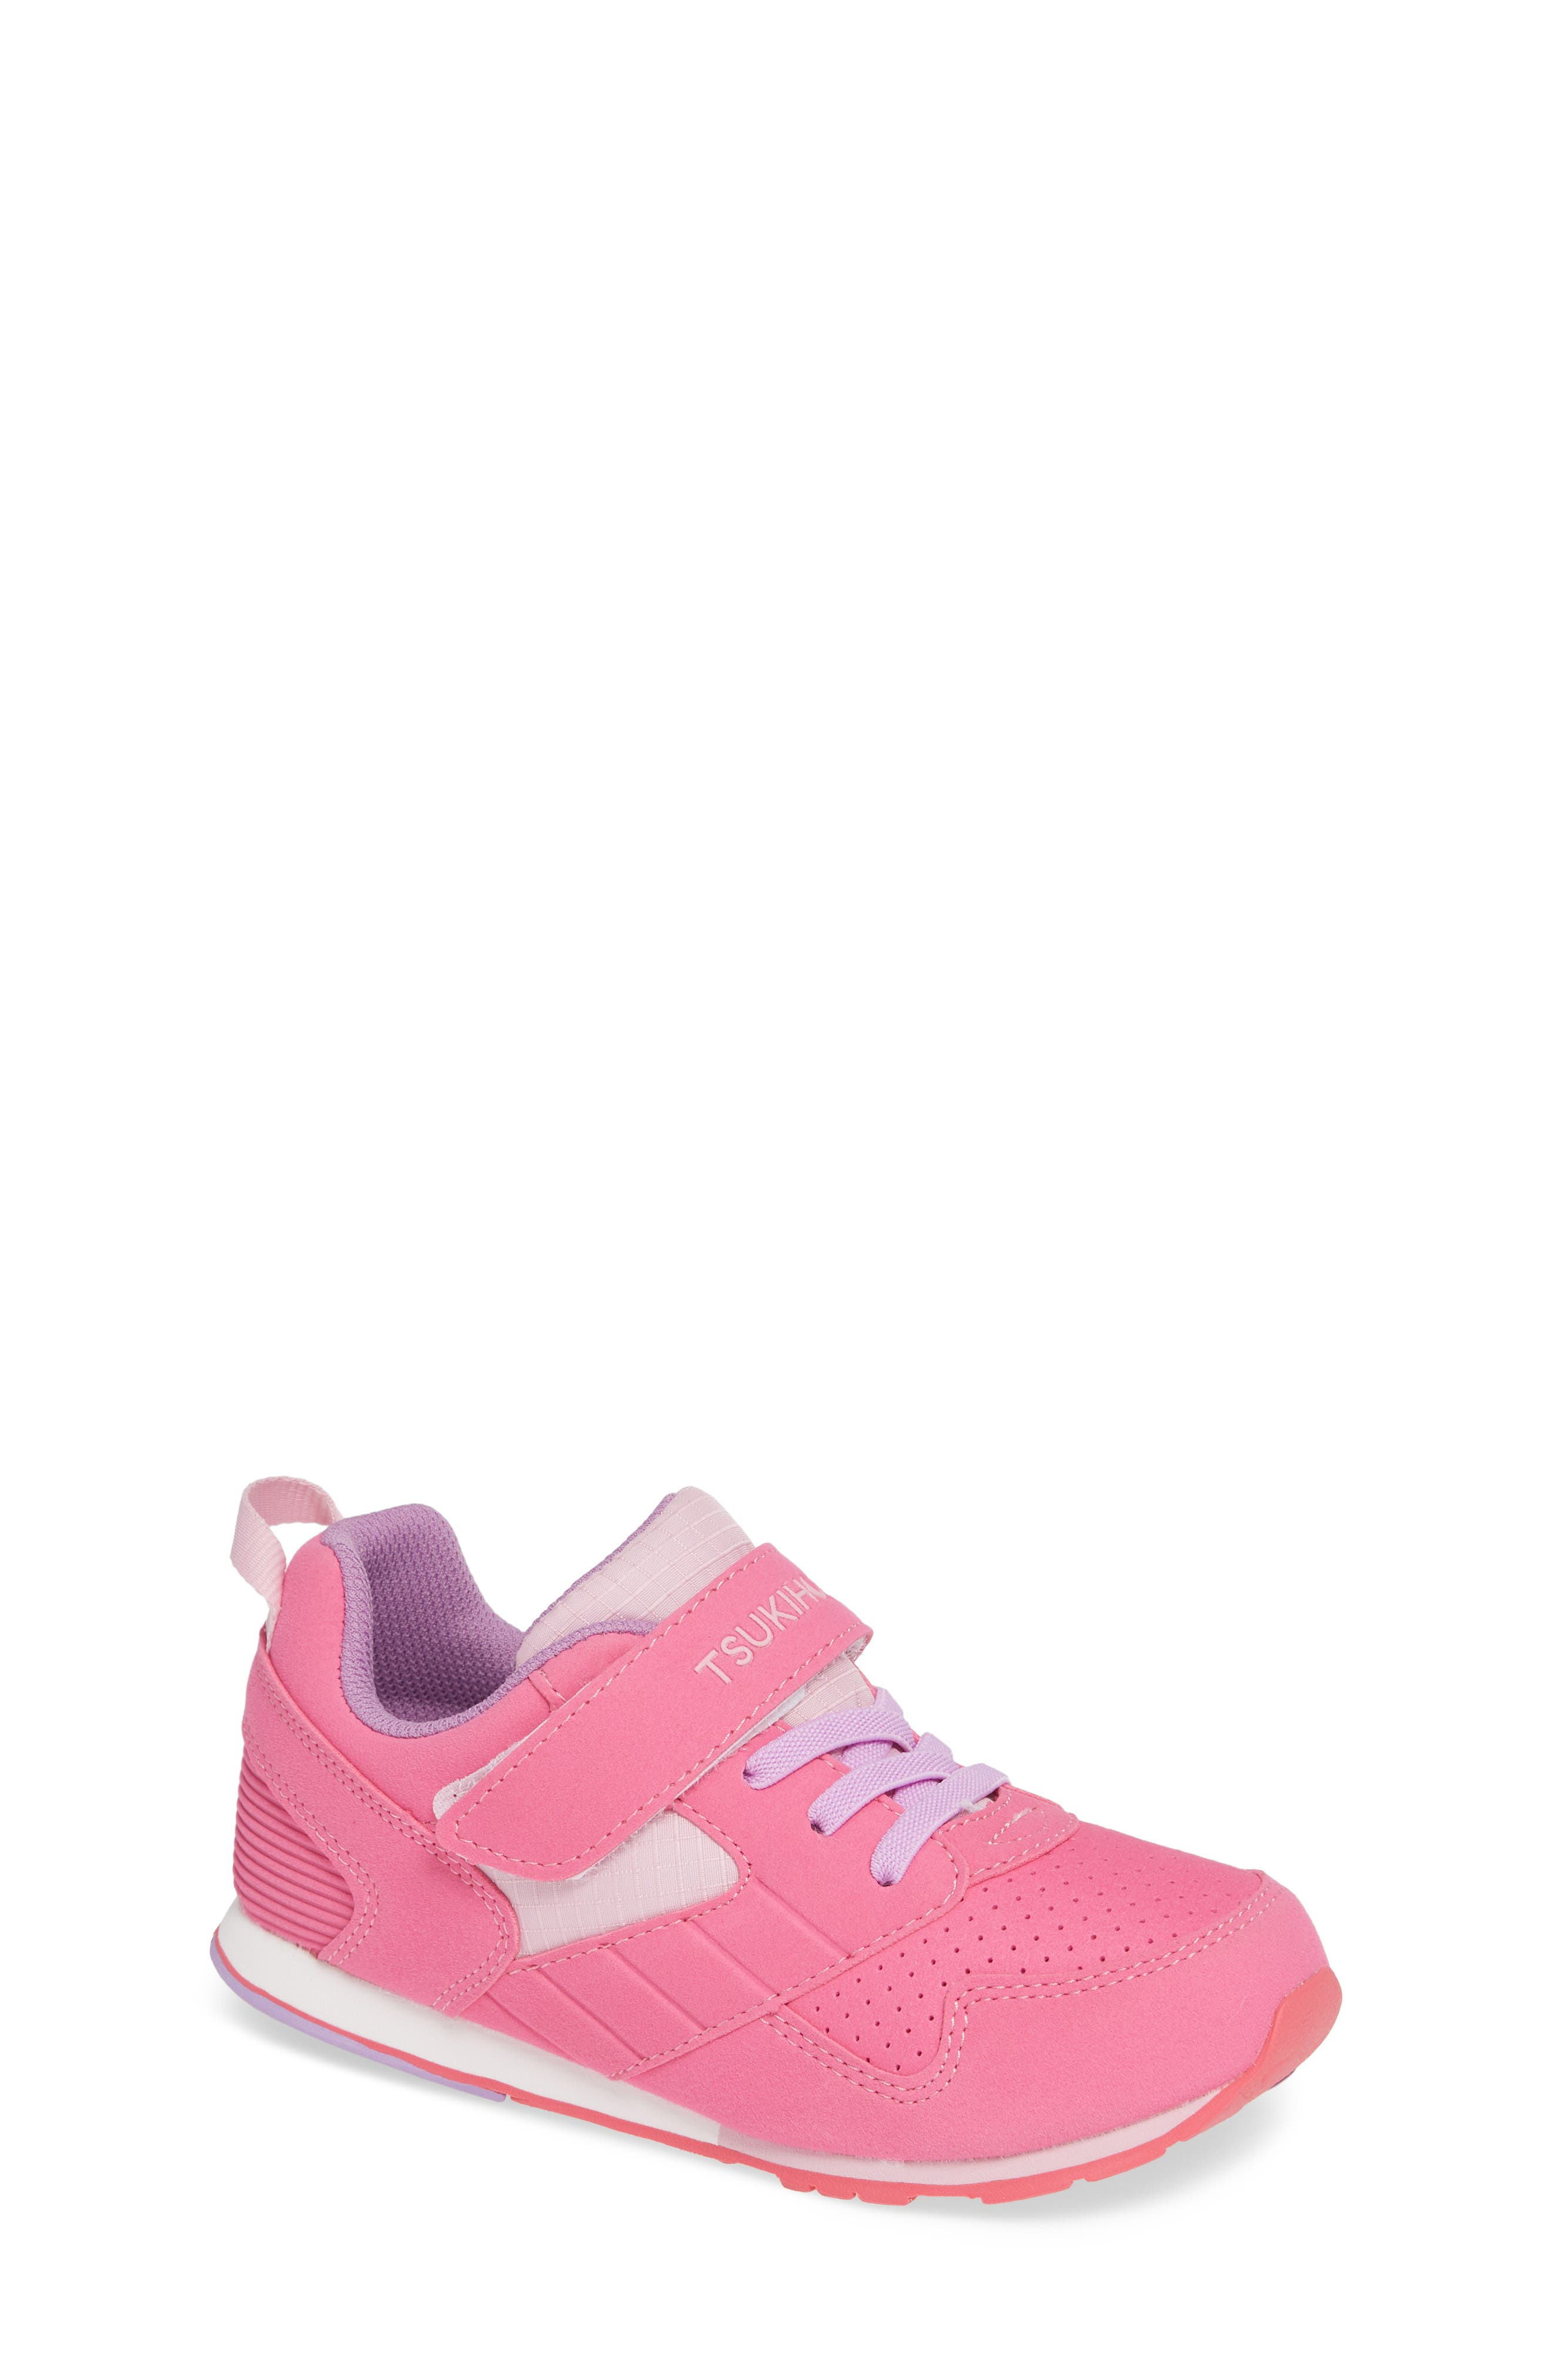 Racer Washable Sneaker,                             Main thumbnail 1, color,                             FUCHSIA/ PINK